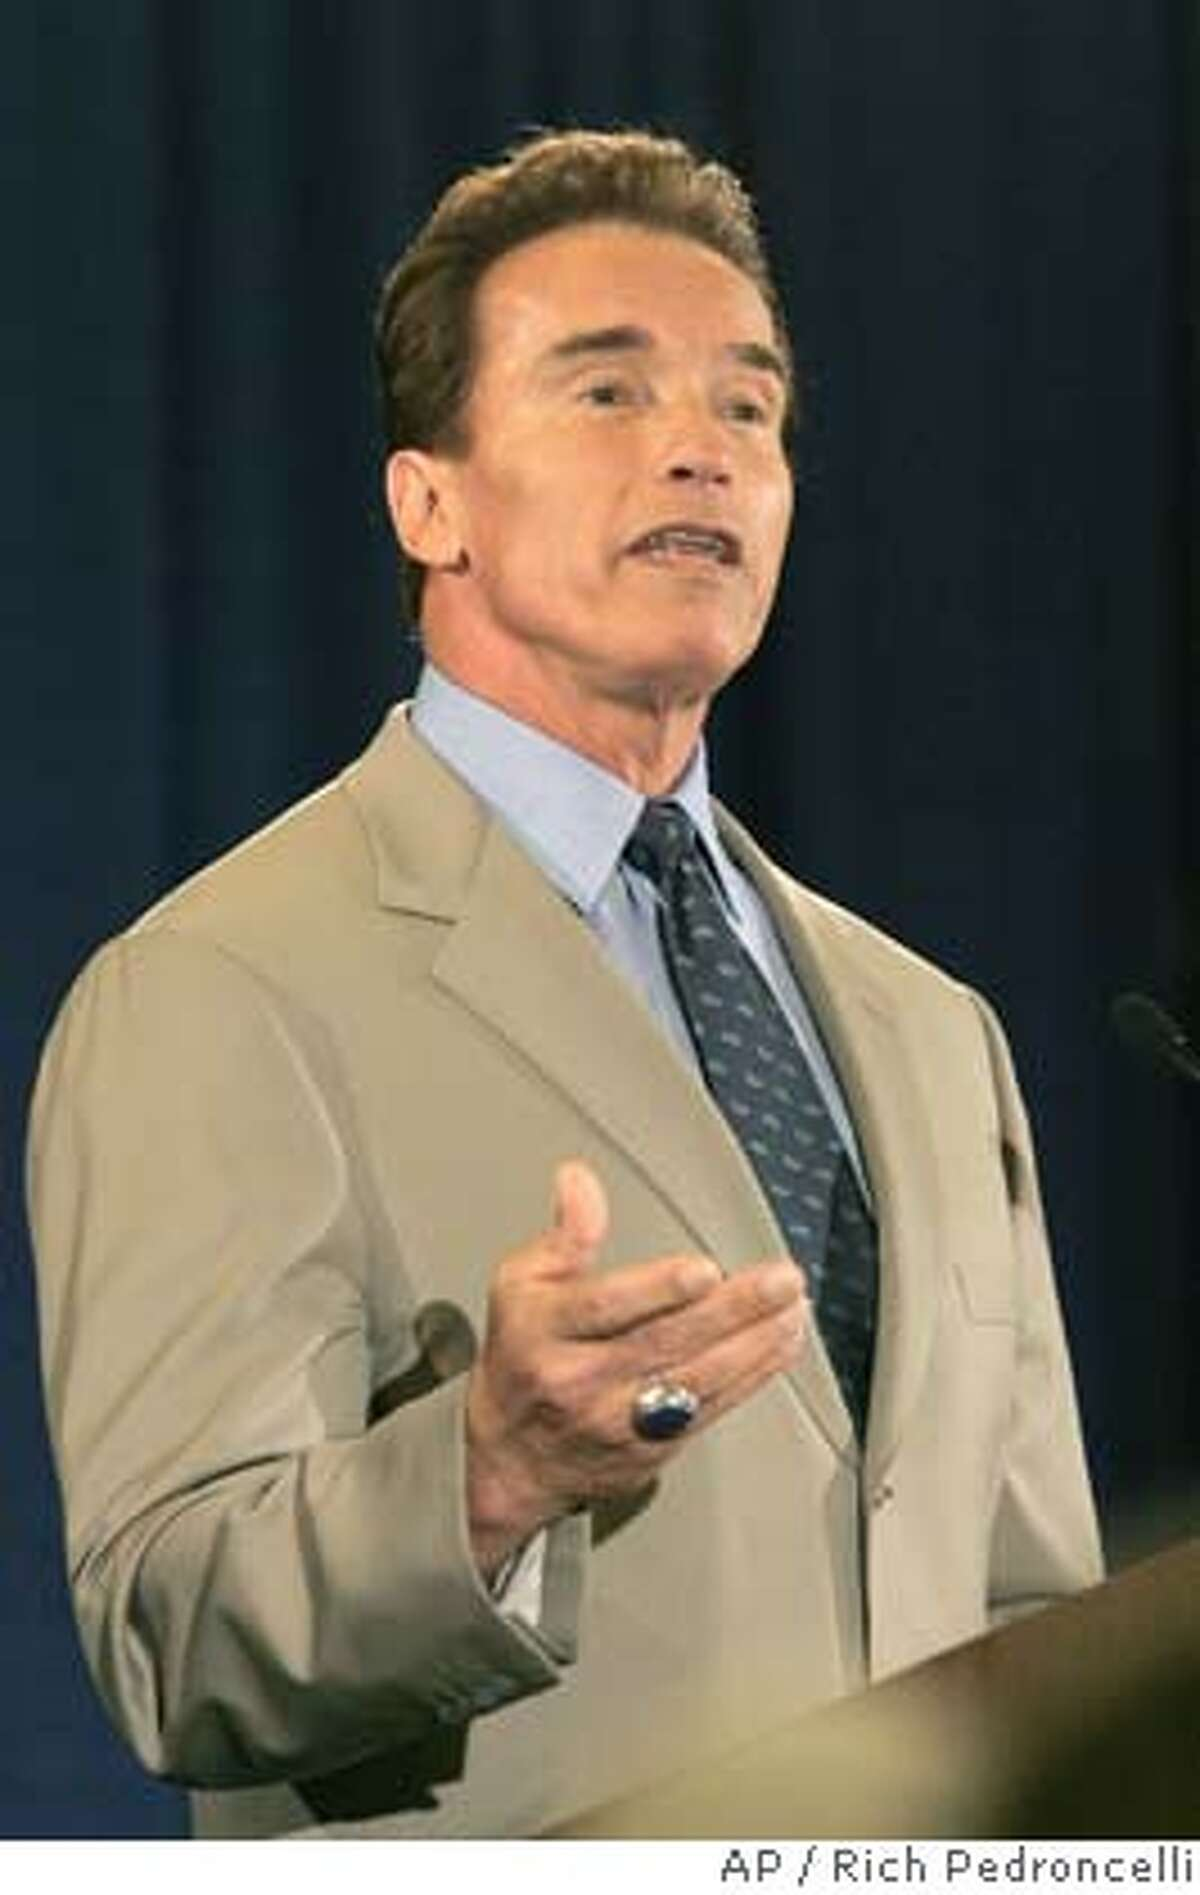 Gov. Arnold Schwarzenegger announces that he wants to restore $1.3 billion in funding to transporation, while speaking before the League of California Cities, in Sacramento, Calif., Wednesday, May 11, 2005. Saying the Calfornia economy has improved significantly in recent months, Schwarzenegger said he would be able to reverse plans made in January to transfer gas tax money to pay for other programs.(AP Photo/Rich Pedroncelli) Ran on: 05-29-2005 Schwarz- enegger Ran on: 05-29-2005 Schwarz- enegger